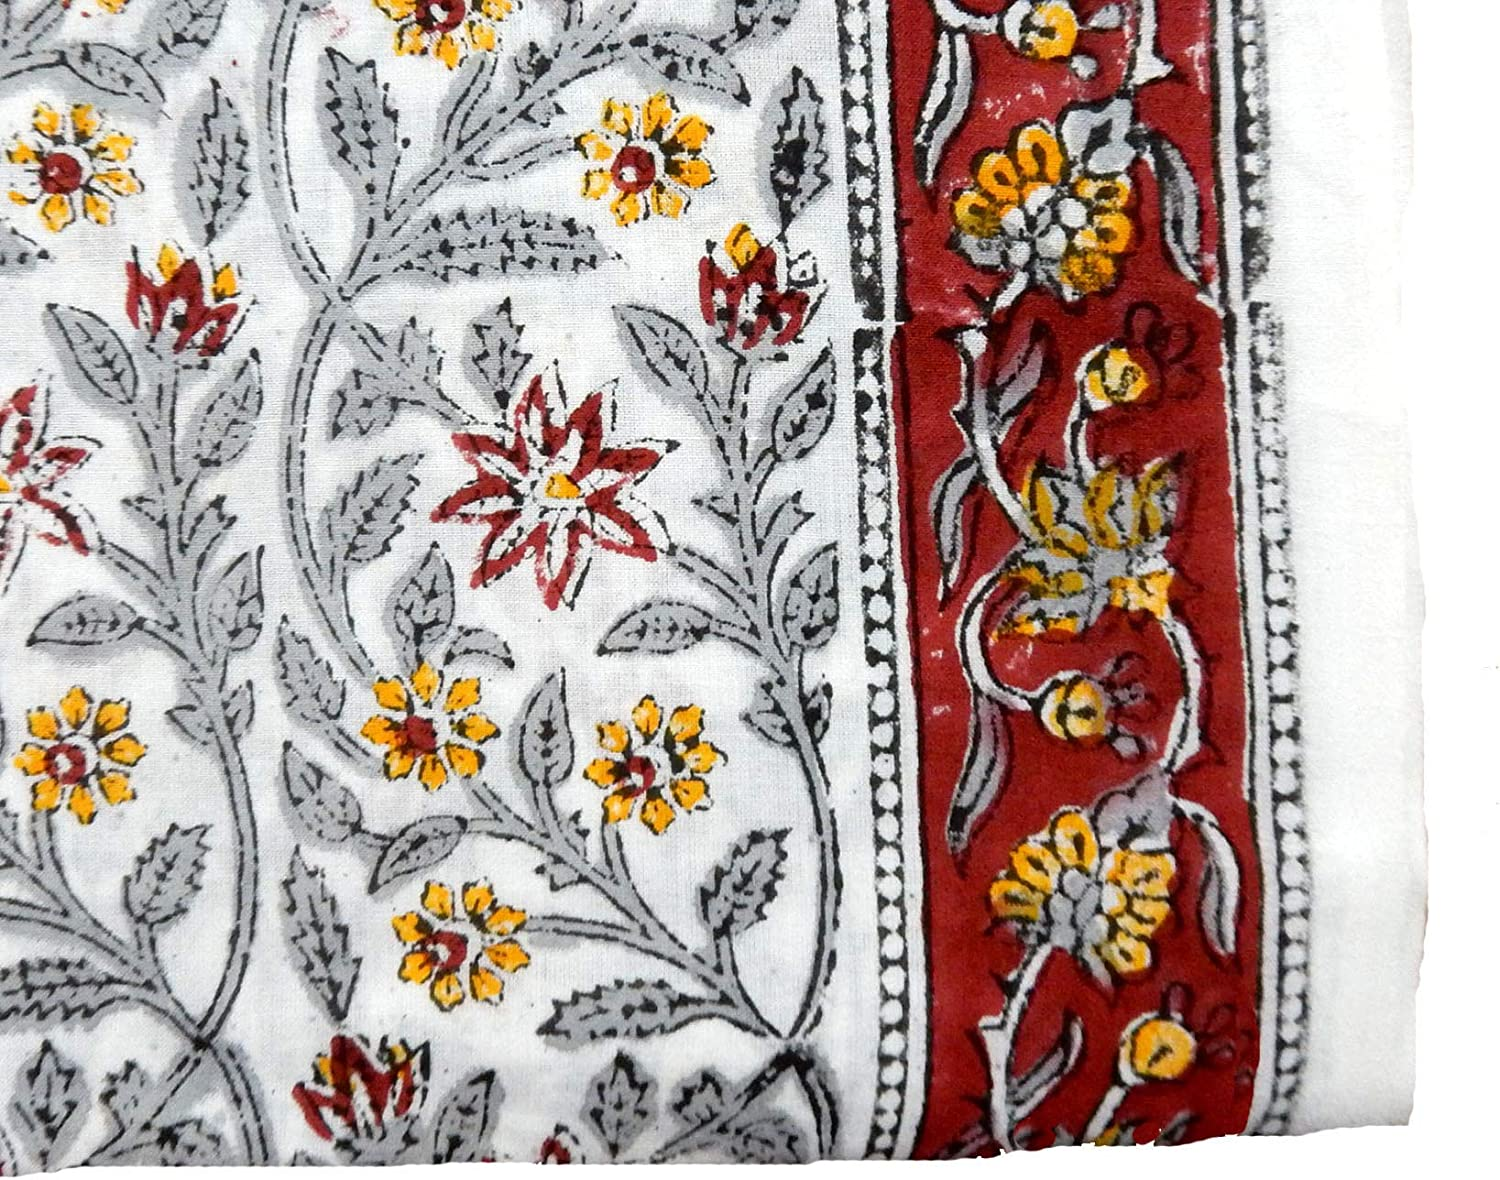 Pailsey Print Dressmaking Indian Decor Cotton Fabric Sewing Material By Yard